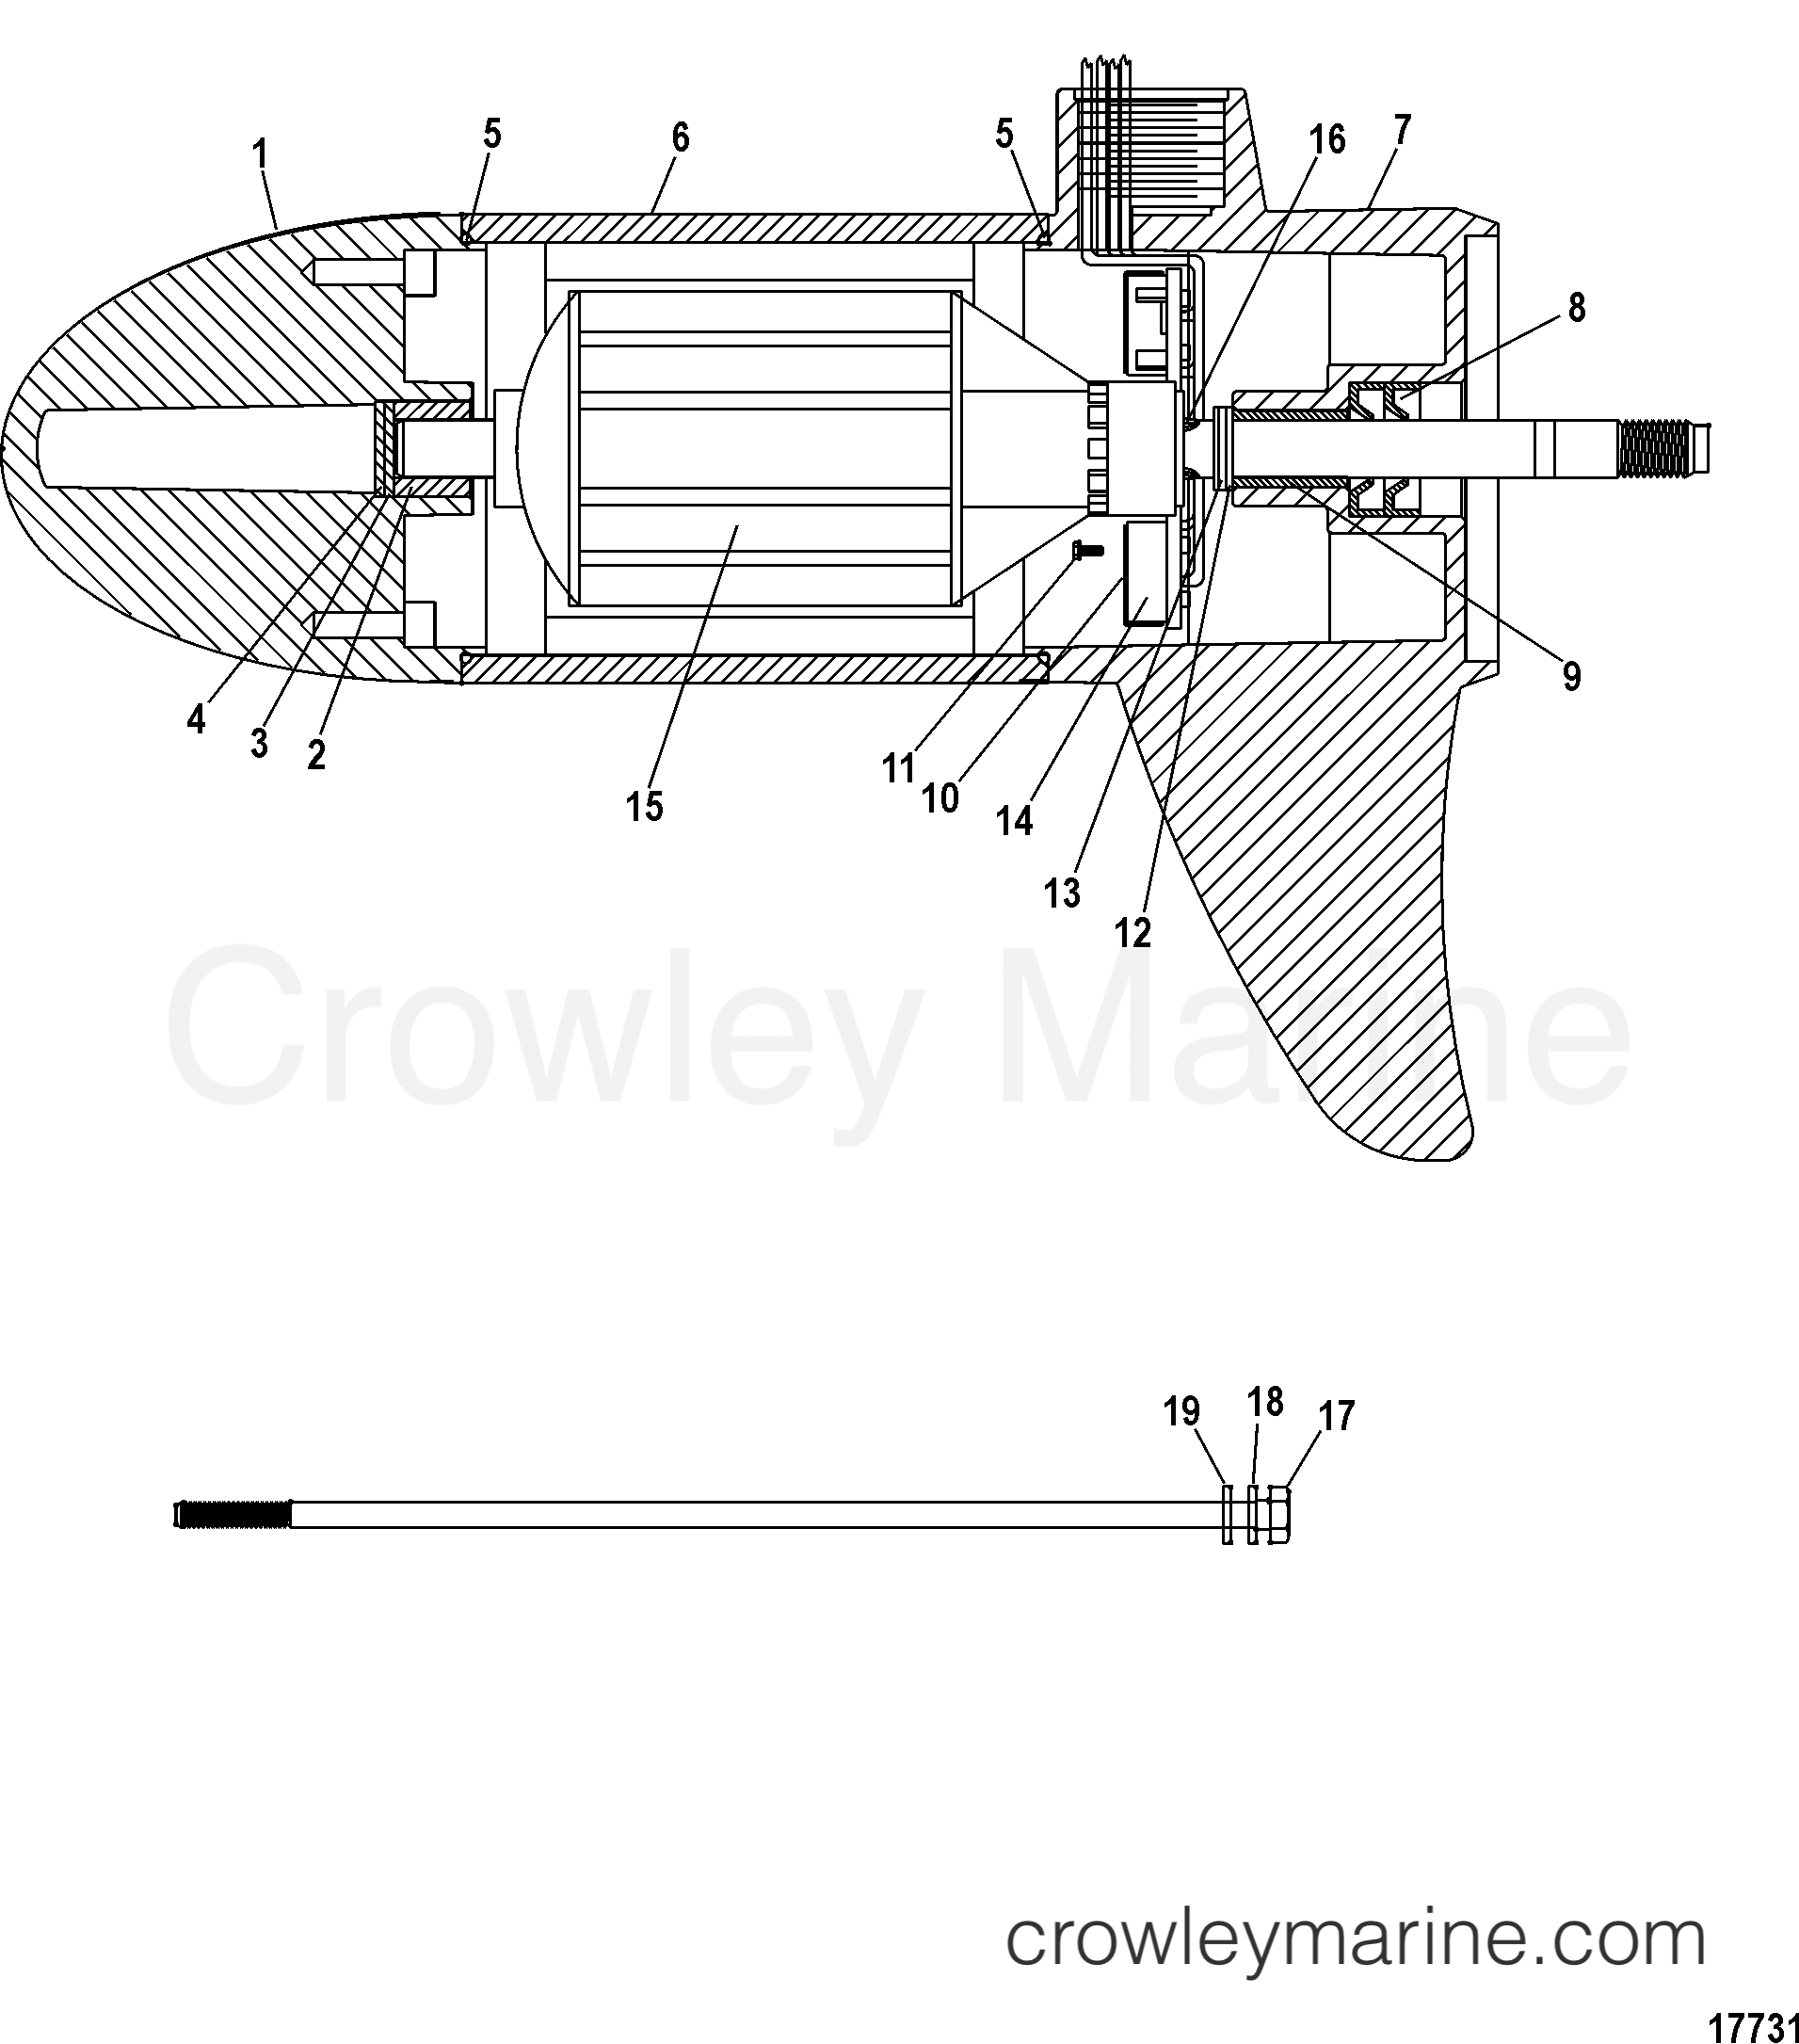 2005 MotorGuide 12V [MOTORGUIDE] - 921310040 LOWER UNIT ASSEMBLY(30# - 5/2 SPEED) (MHM39706T) section